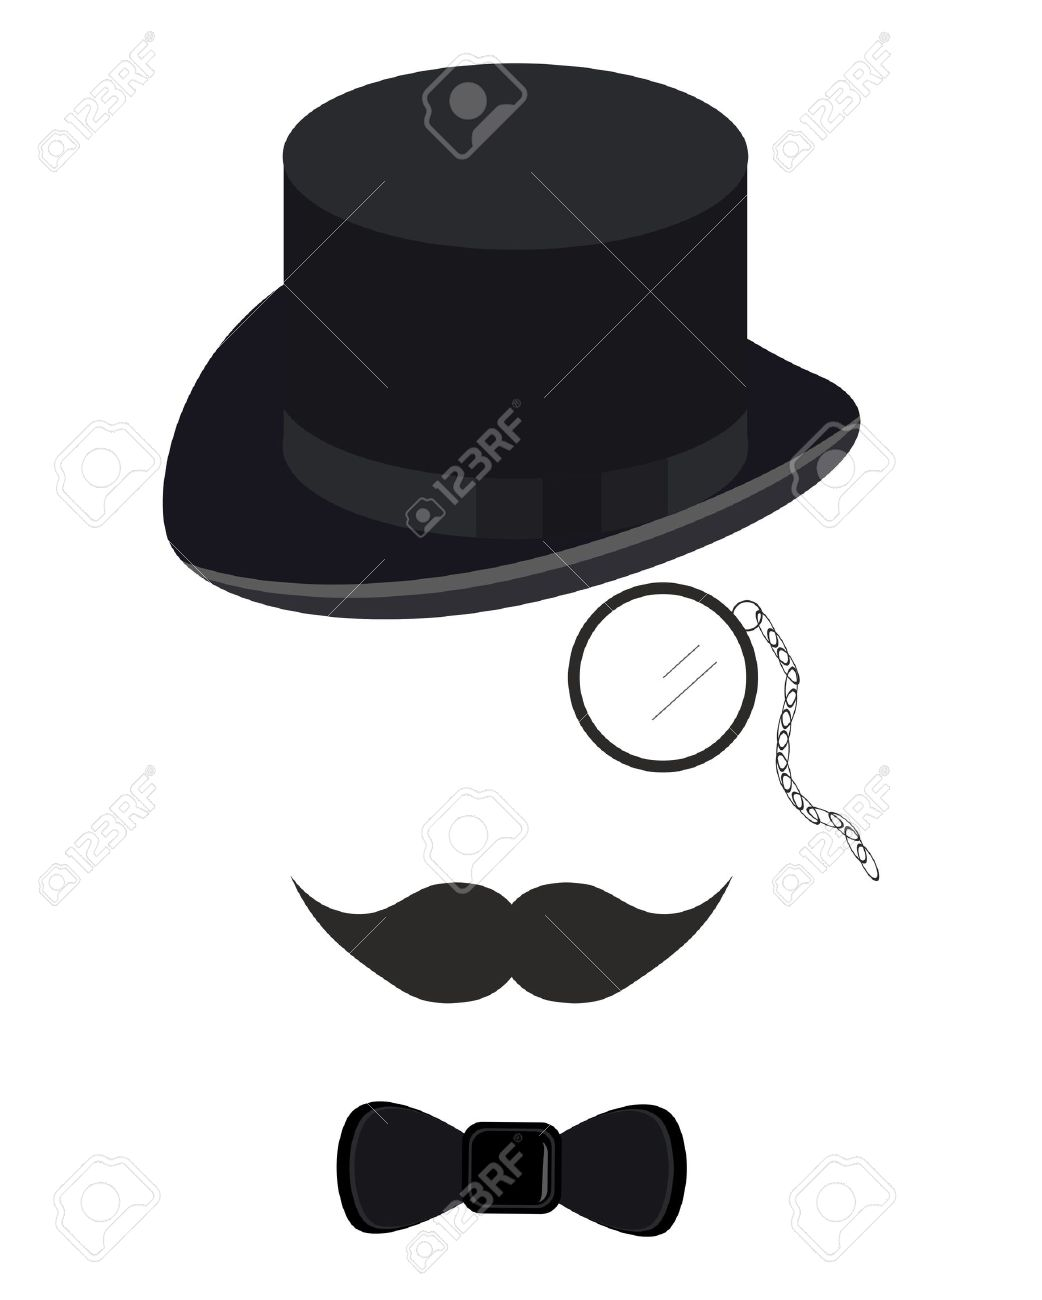 78 Monopoly Man Cliparts, Stock Vector And Royalty Free Monopoly.